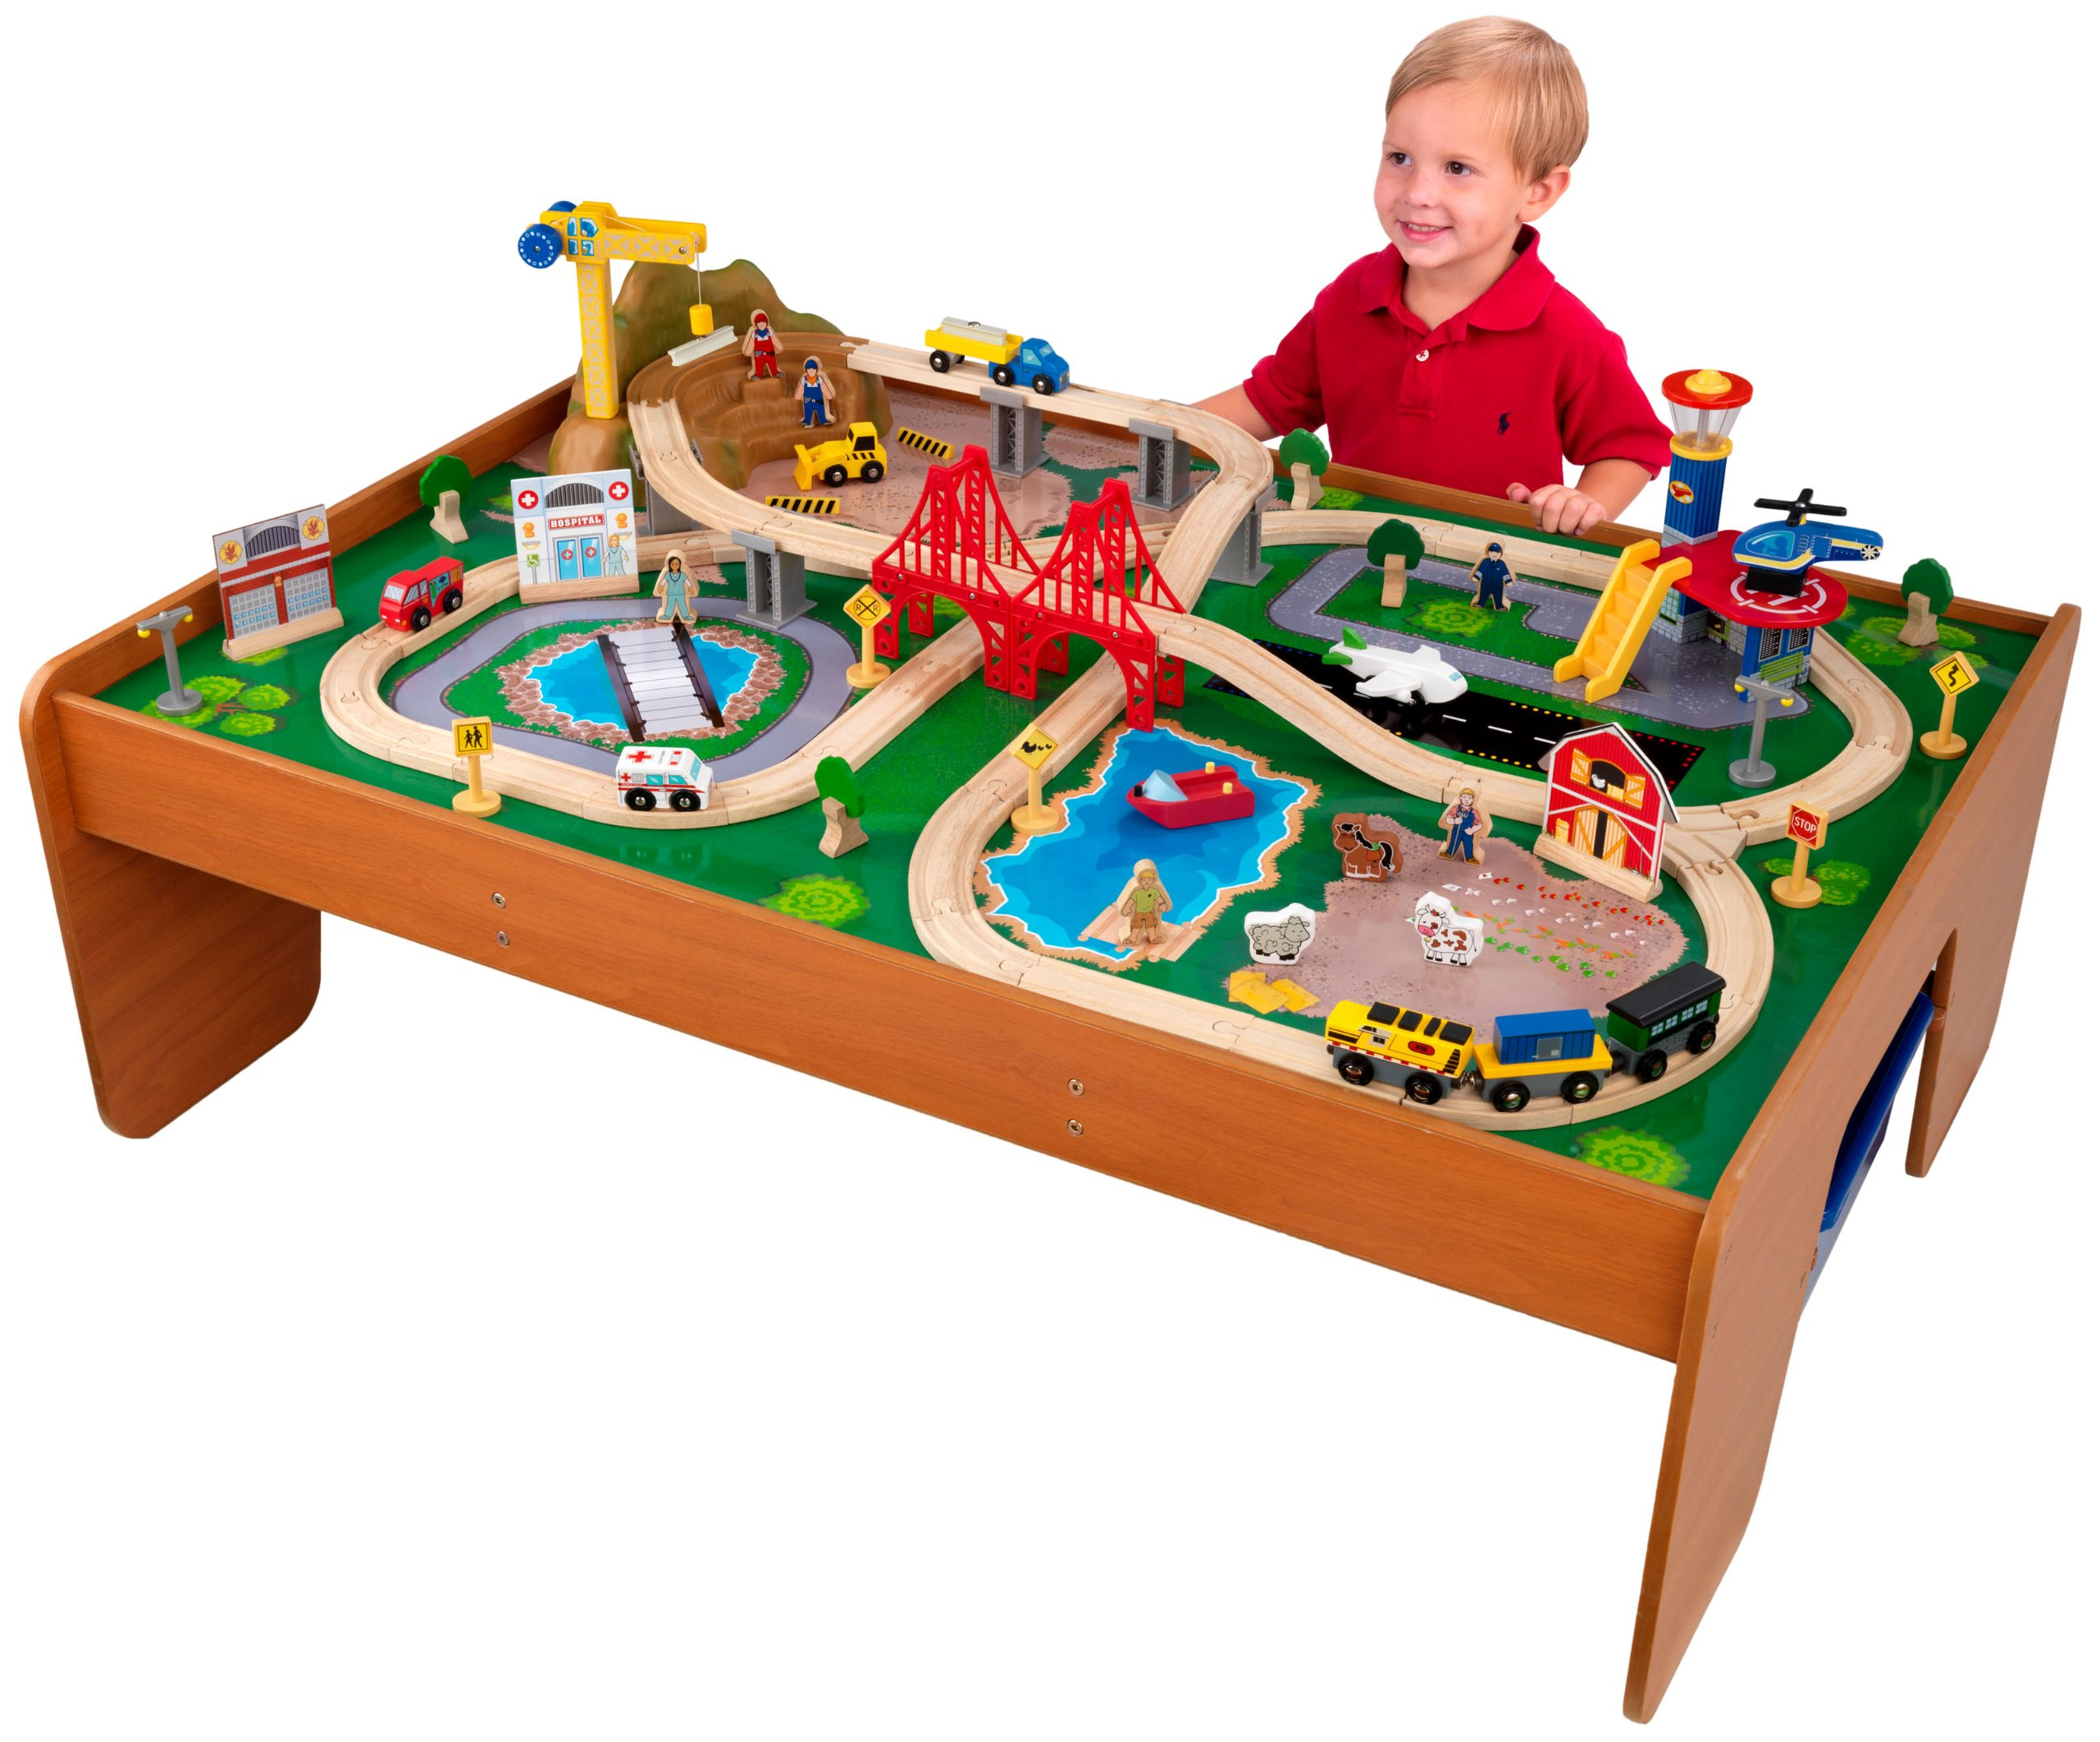 KidKraft Metropolis Train Table 100pc Train Set Kids Play Toy Fun ...